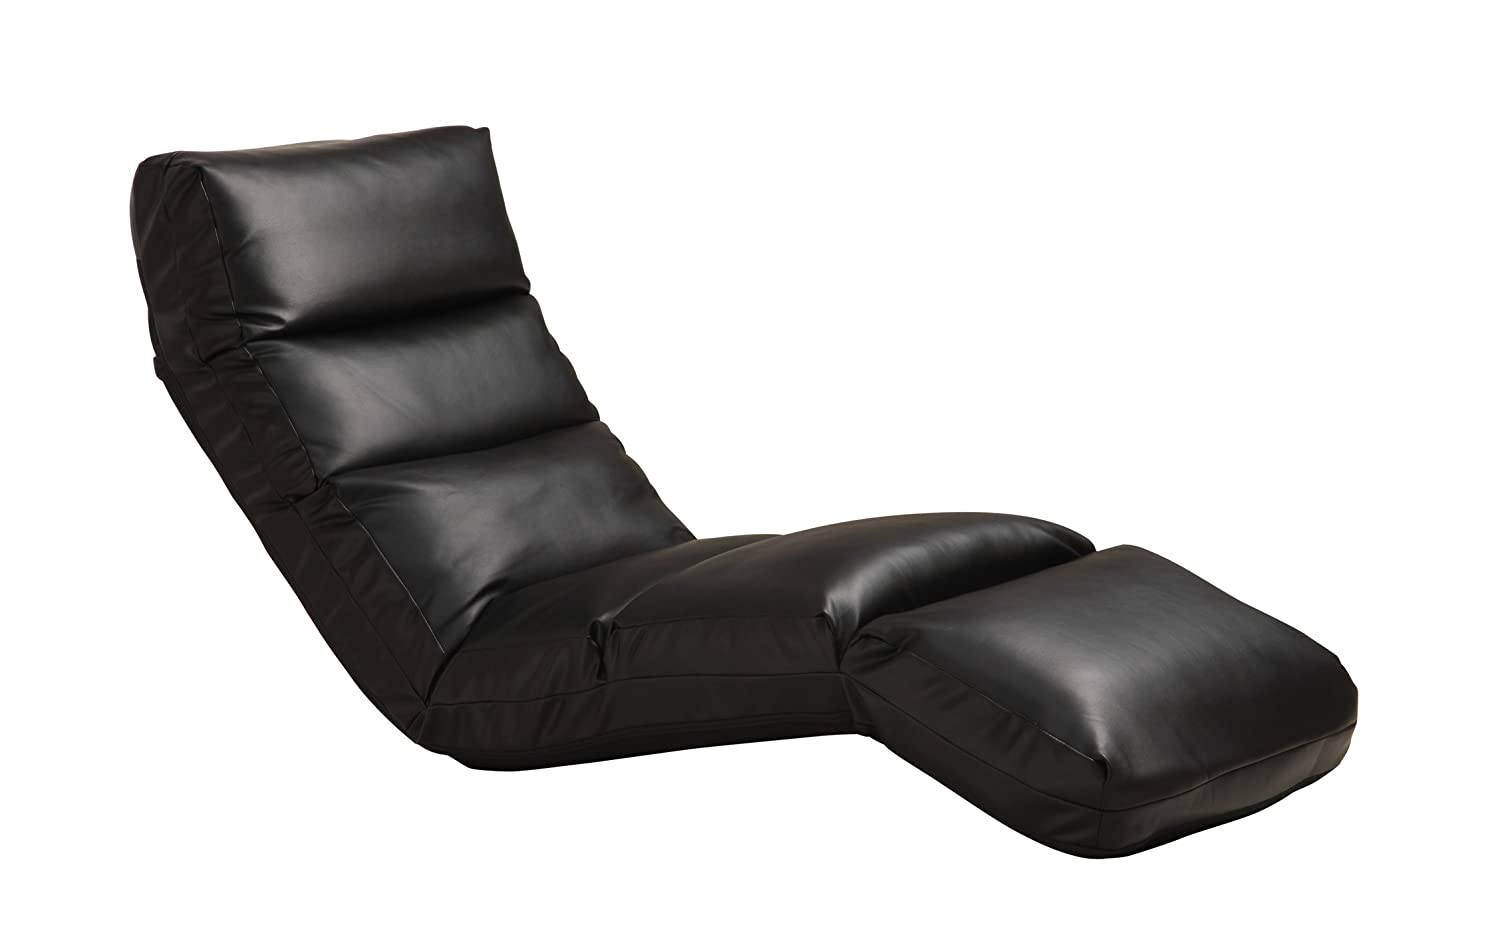 adjustable floor chair with 5 settings diy bean bag cover gaming lounge black chaise media room